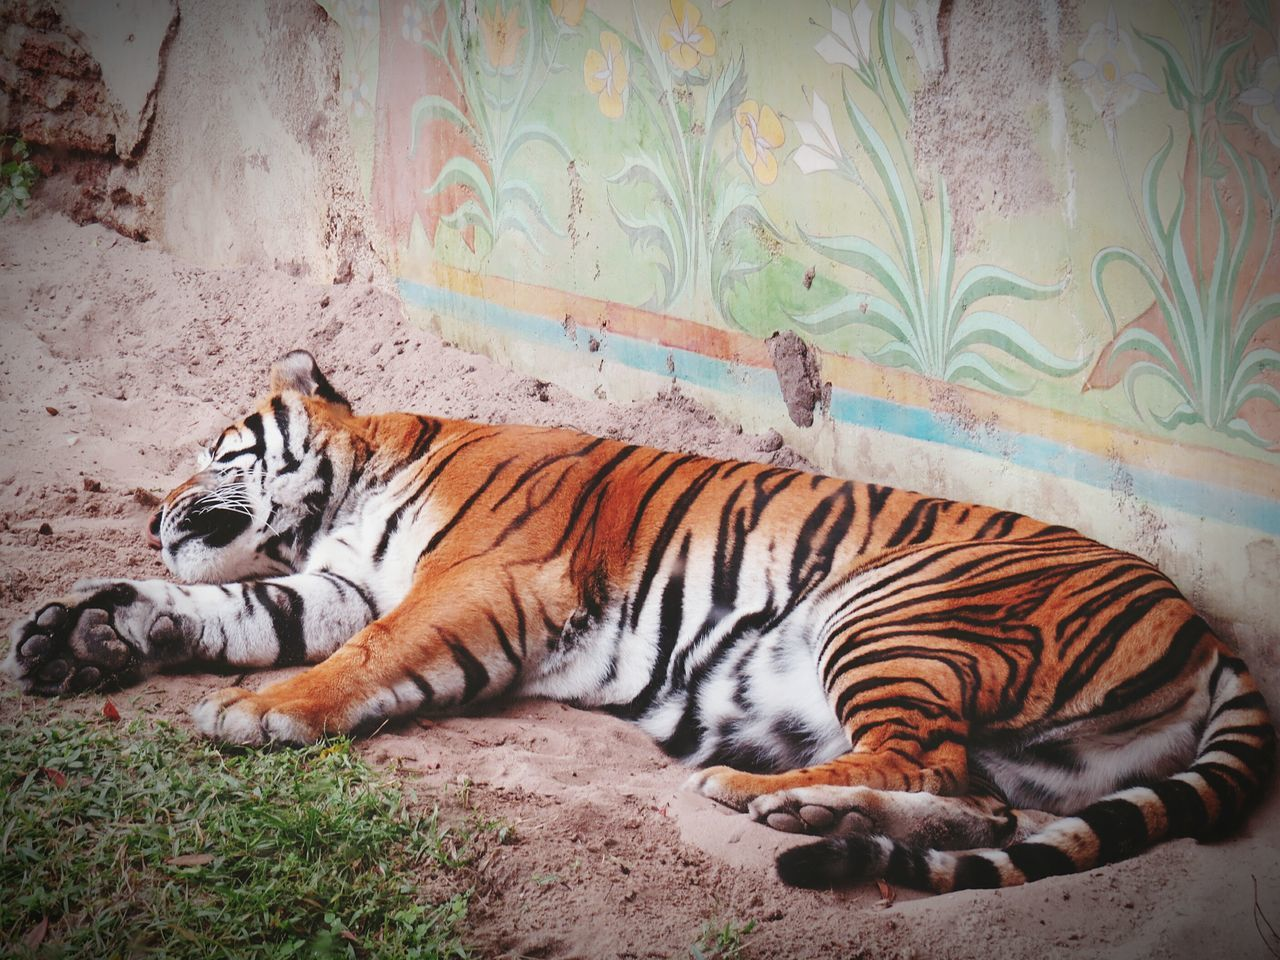 Animal Themes Tiger Mammal One Animal Feline Beauty In Nature Circus Bad Condition Not Good For Me  Desagree Freedom For Animals Freedom For All